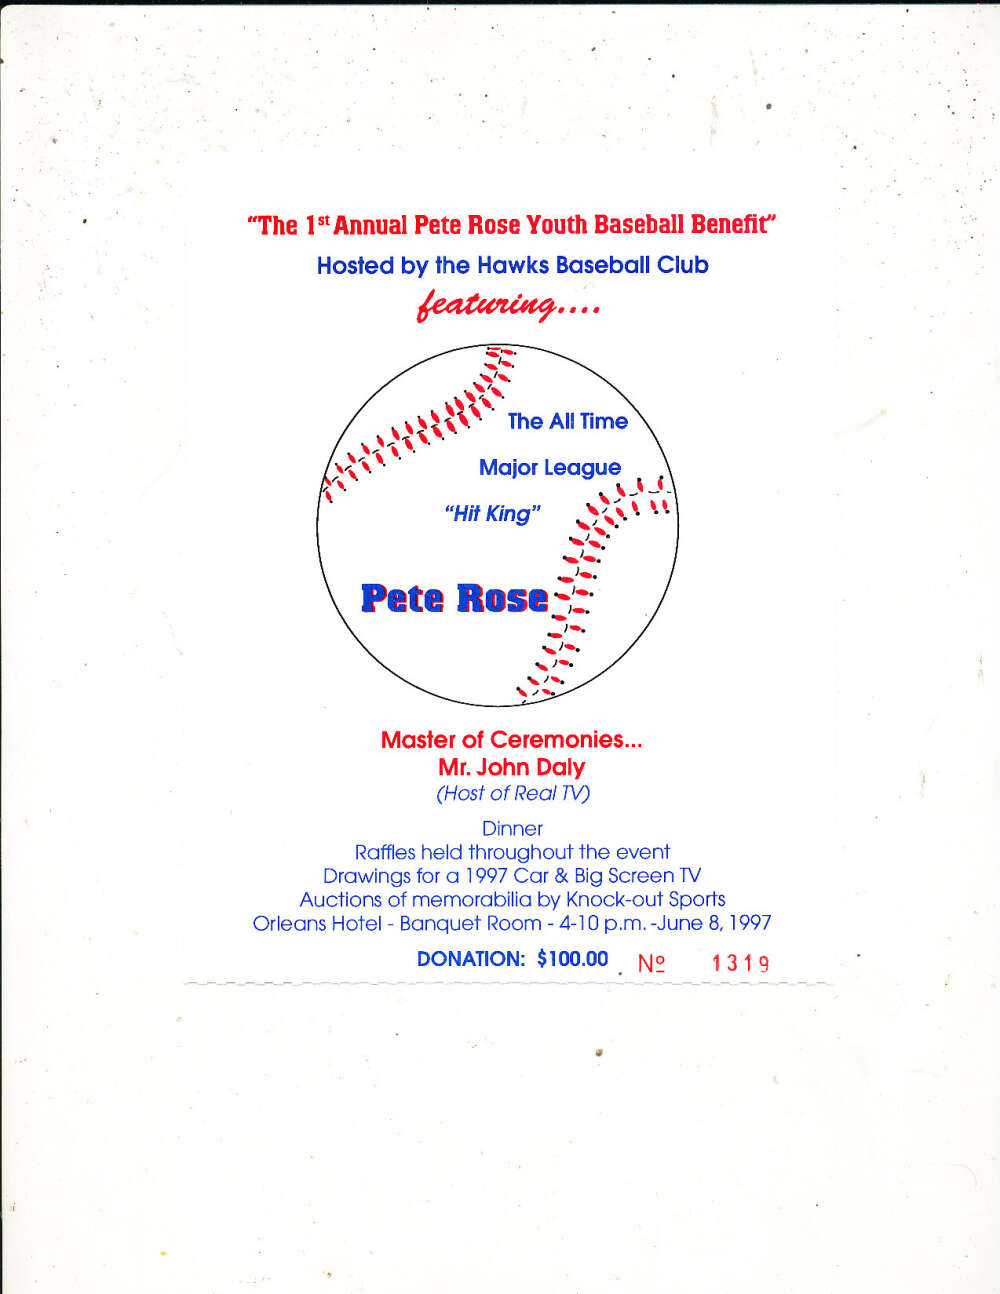 1st Annual Pete Rose Youth Baseball Benefit 1977 raffle ticket